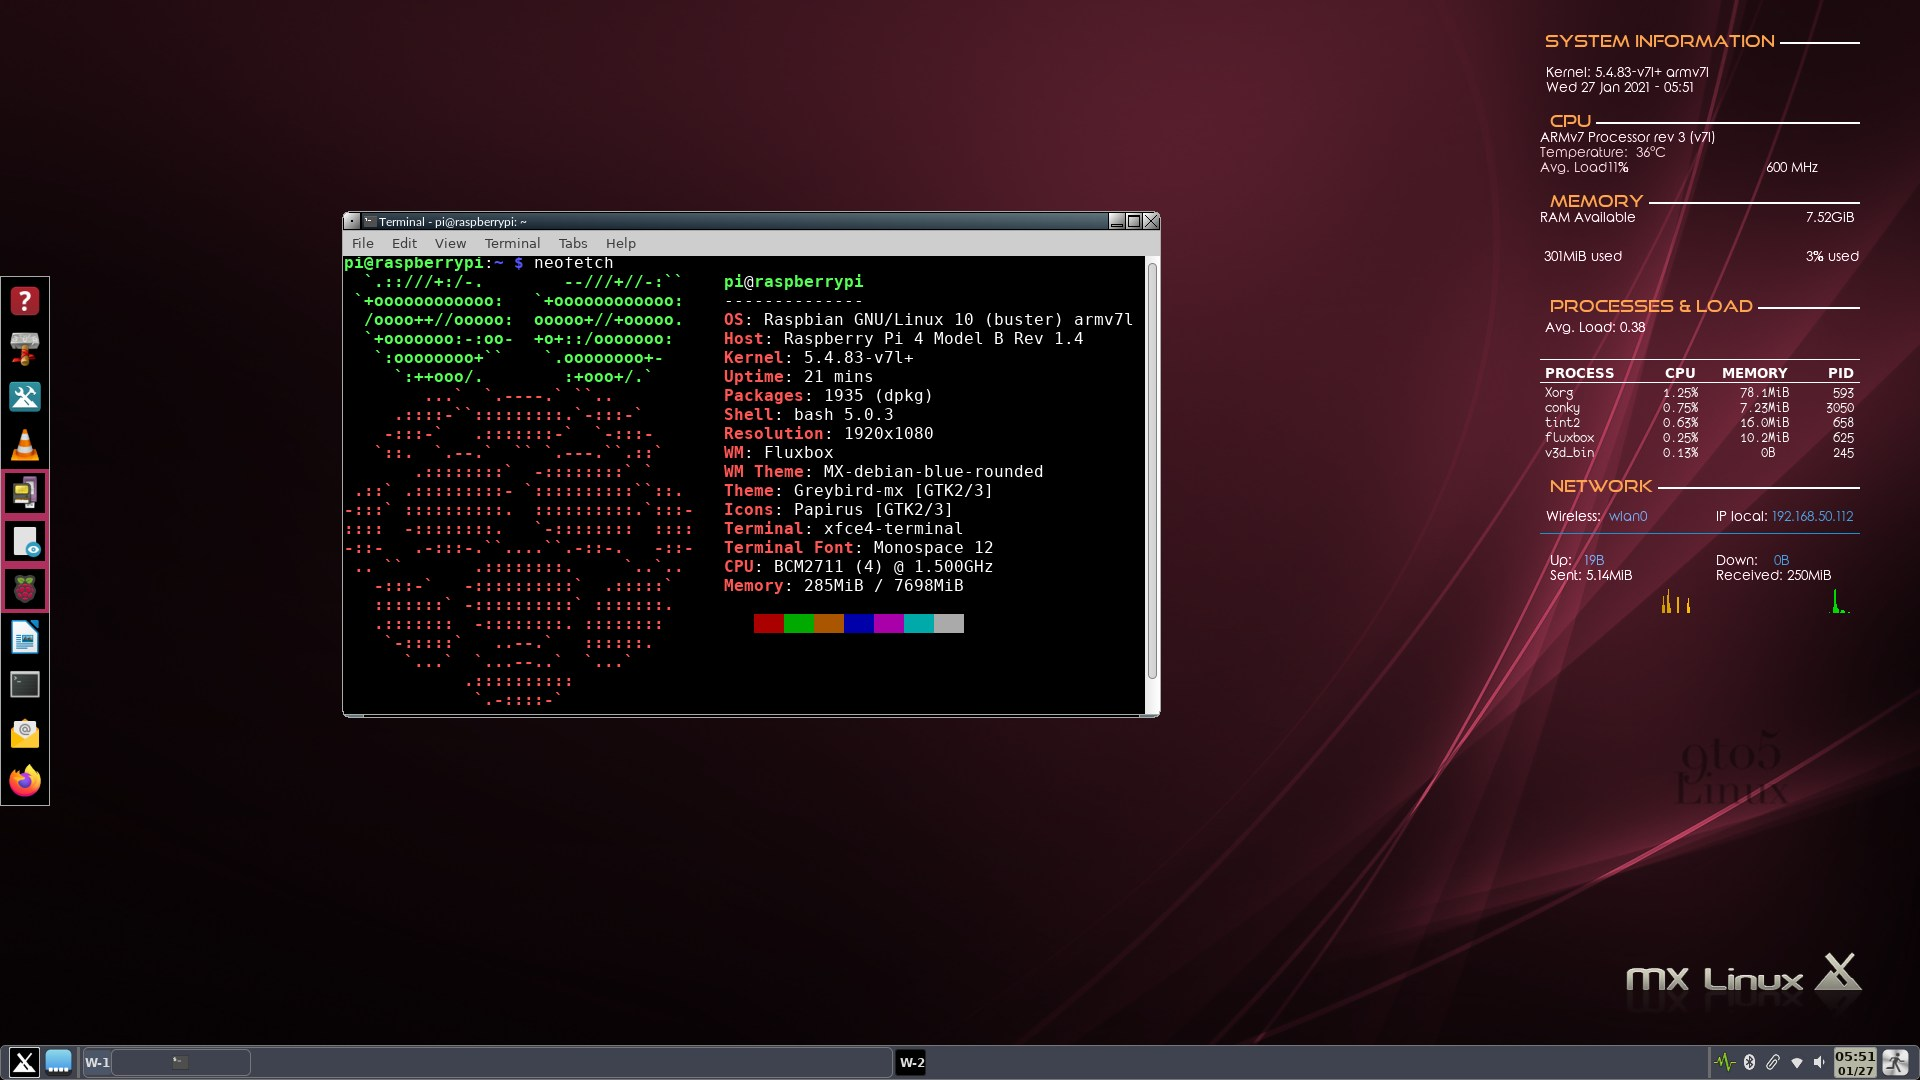 MX Linux Fluxbox Respin Officially Released for Raspberry Pi